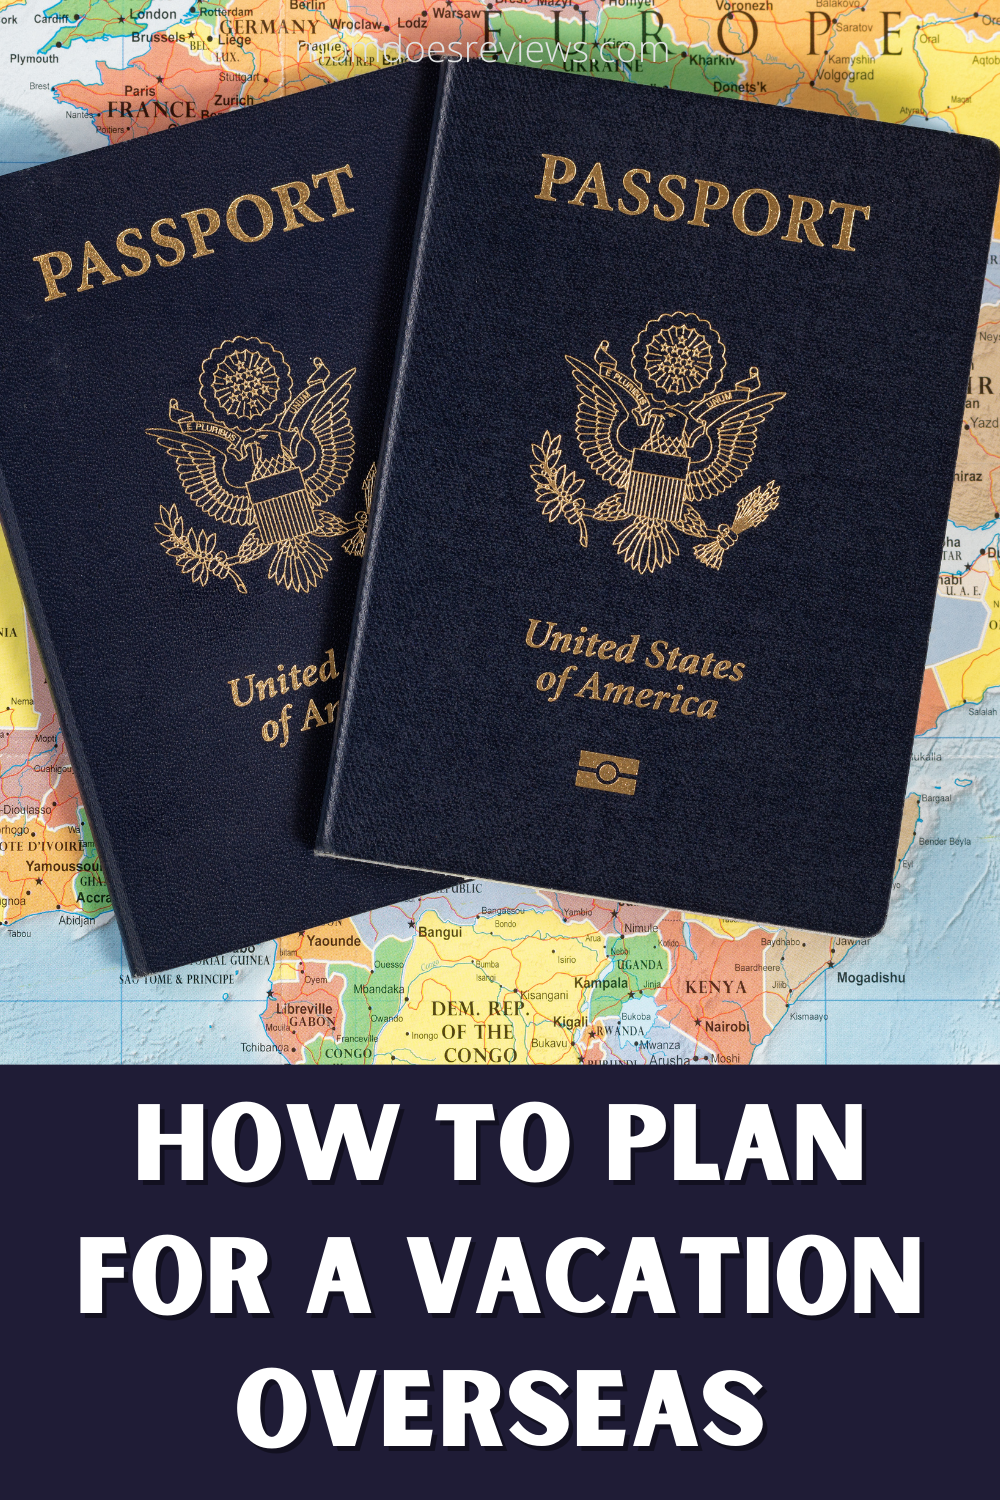 How to Plan for Your Family's First Big Vacation Overseas